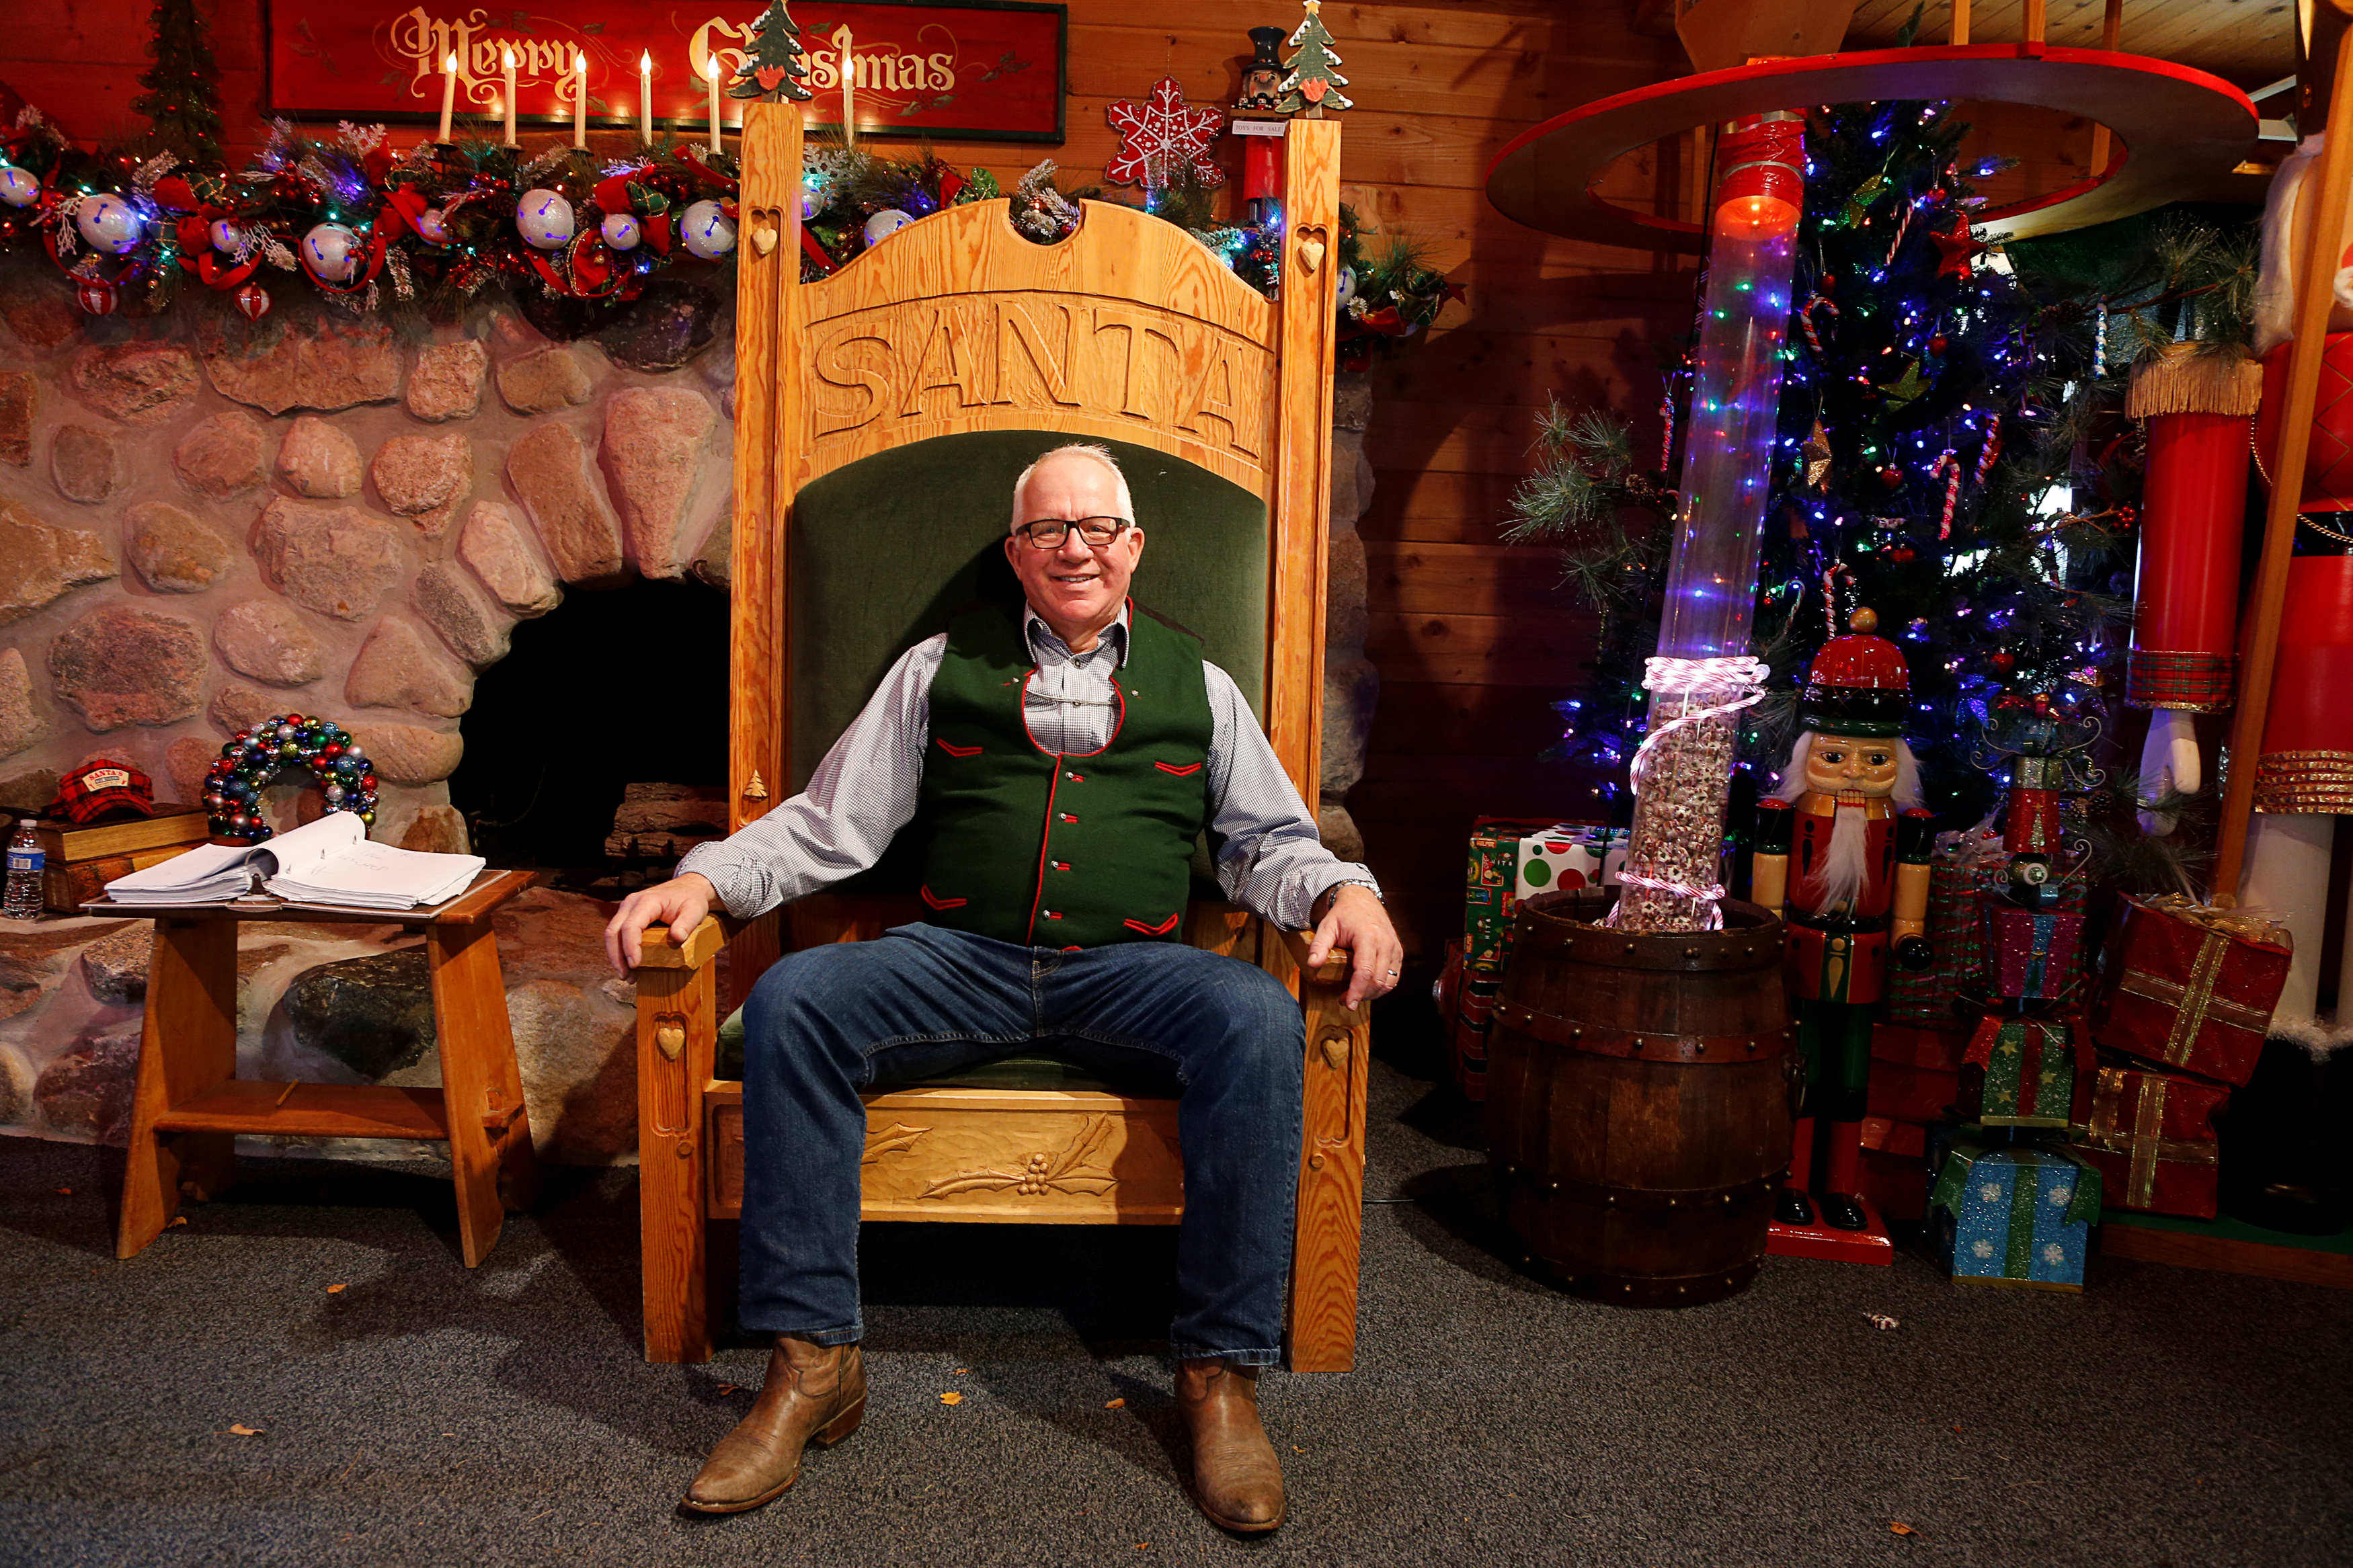 Thomas Valent, dean of the Charles W. Howard Santa Claus School, sits in the Santa House in Midland, Michigan, Oct. 29, 2016.